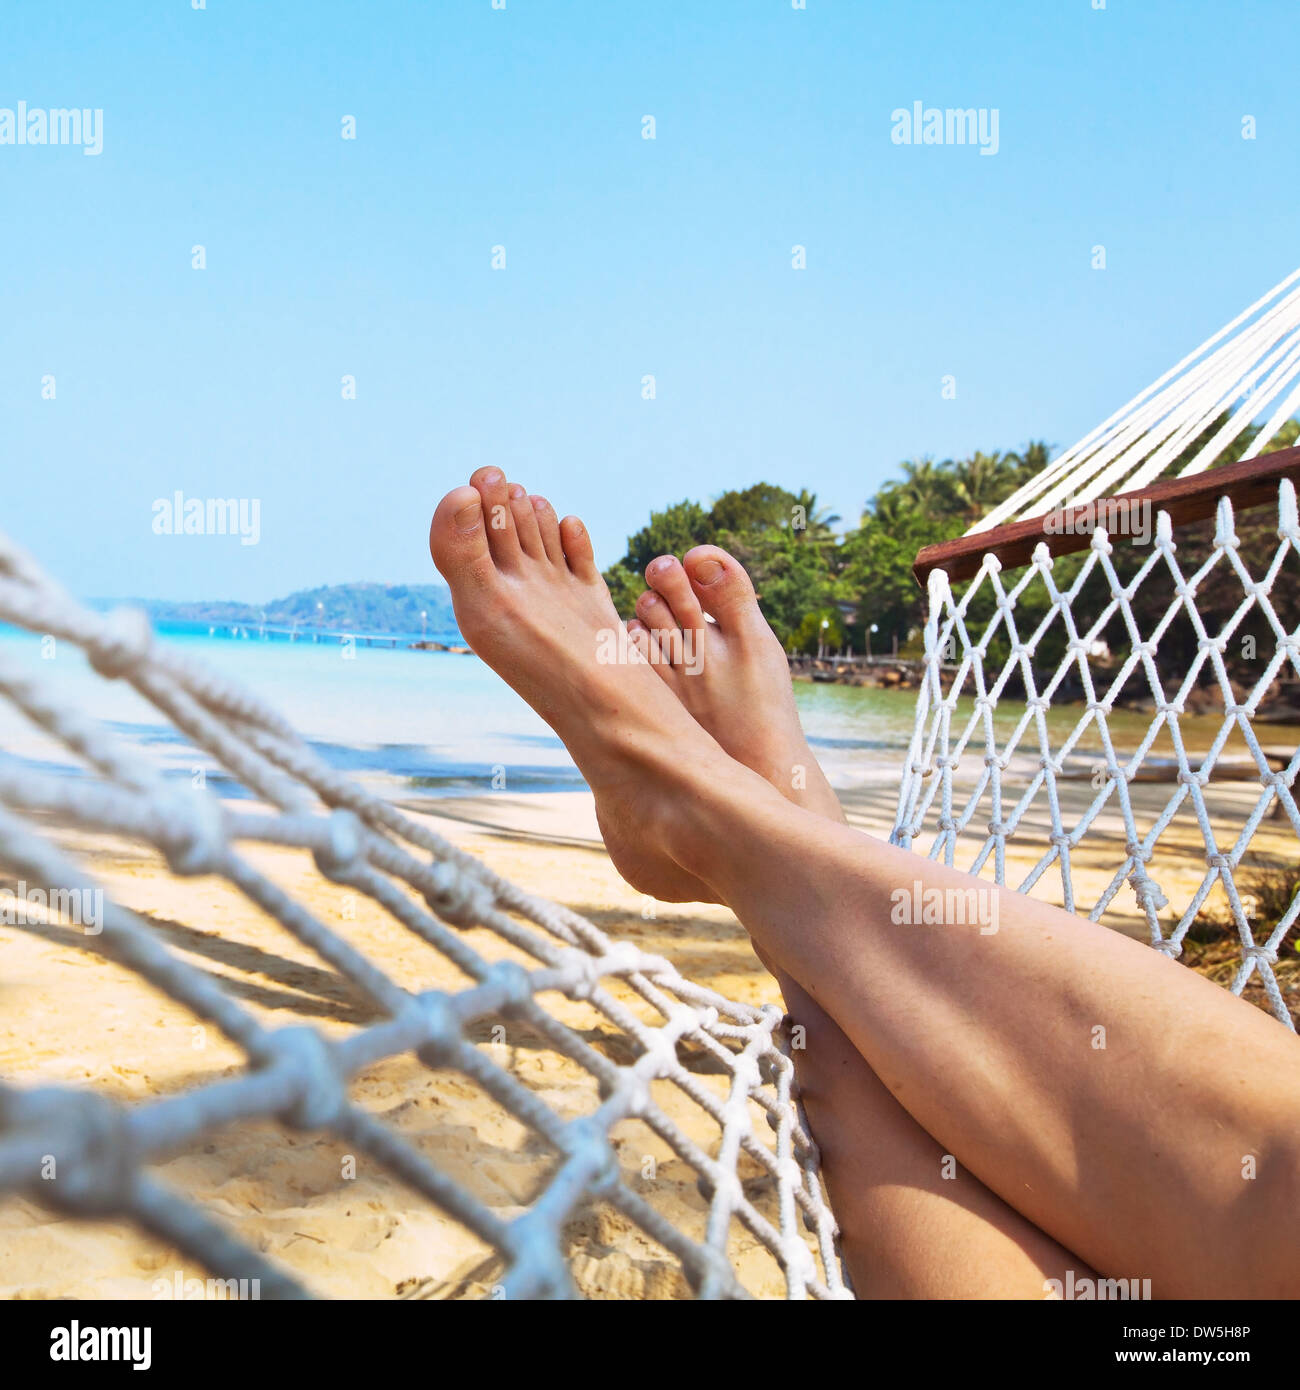 relax on the beach in hammock Stock Photo